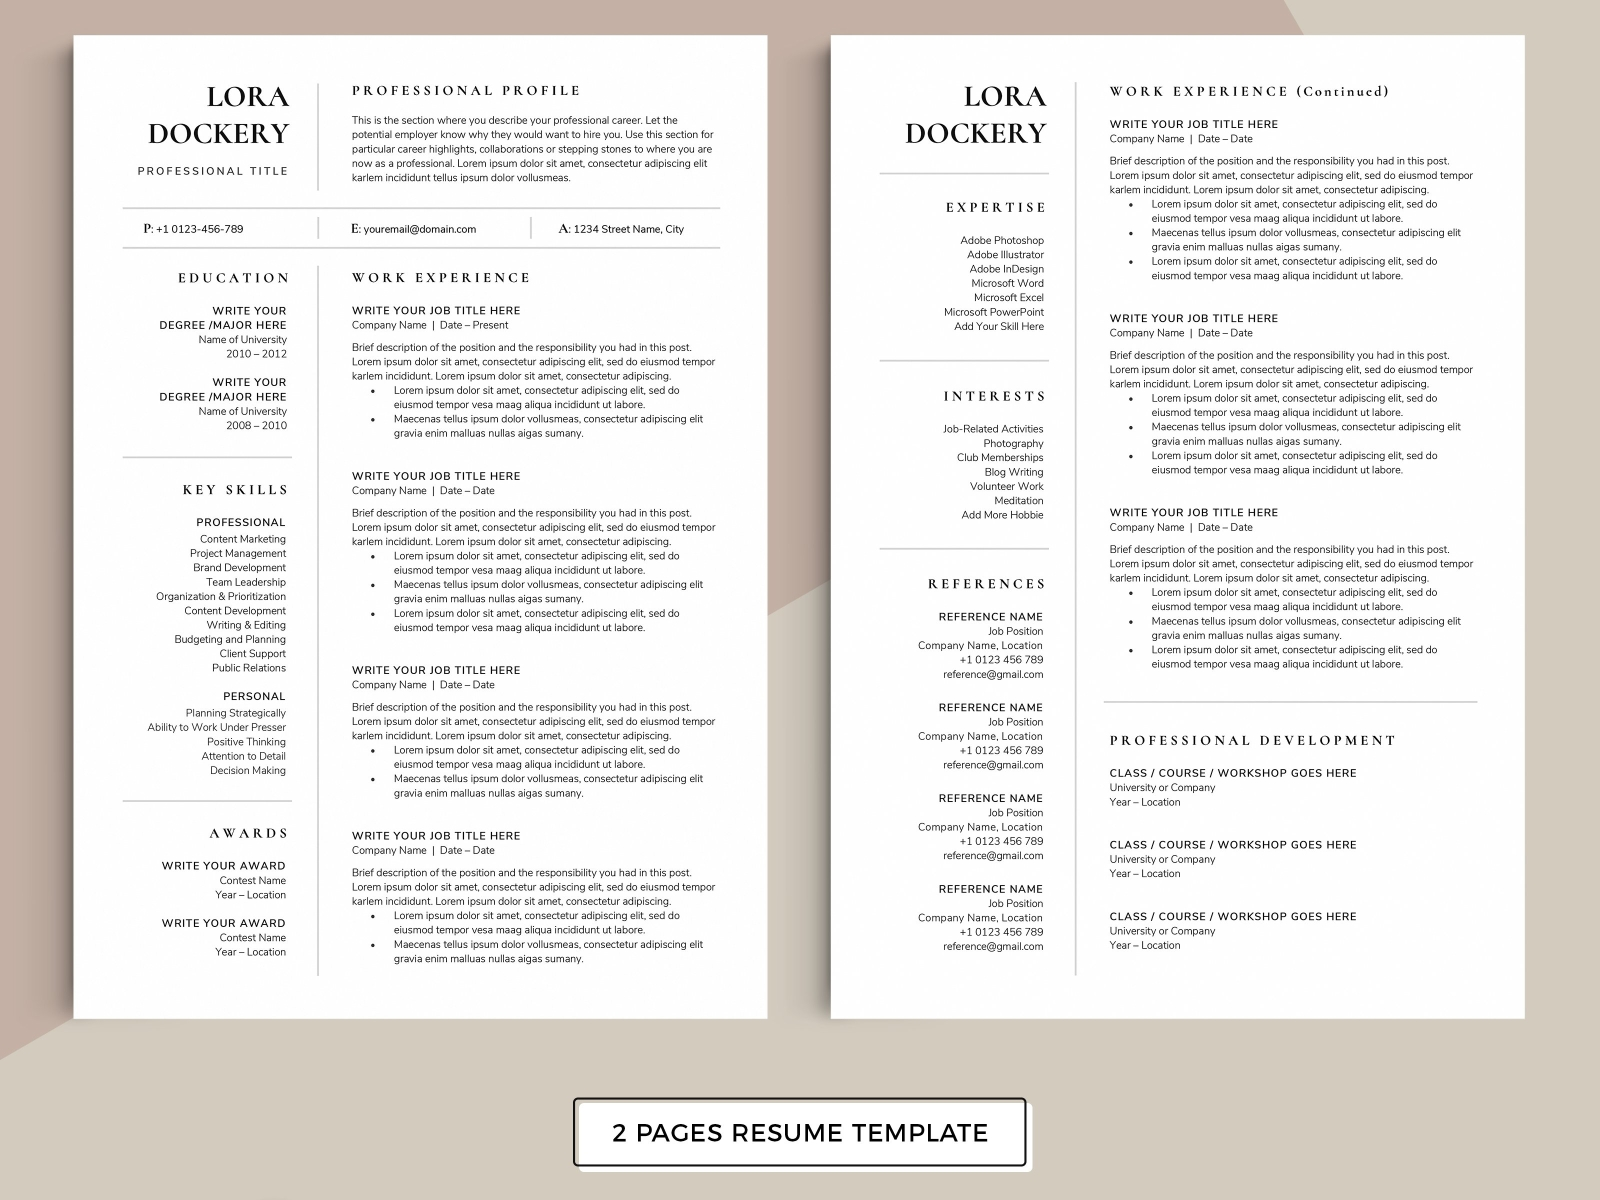 Resume Cv Template Lora By Resume Templates On Dribbble